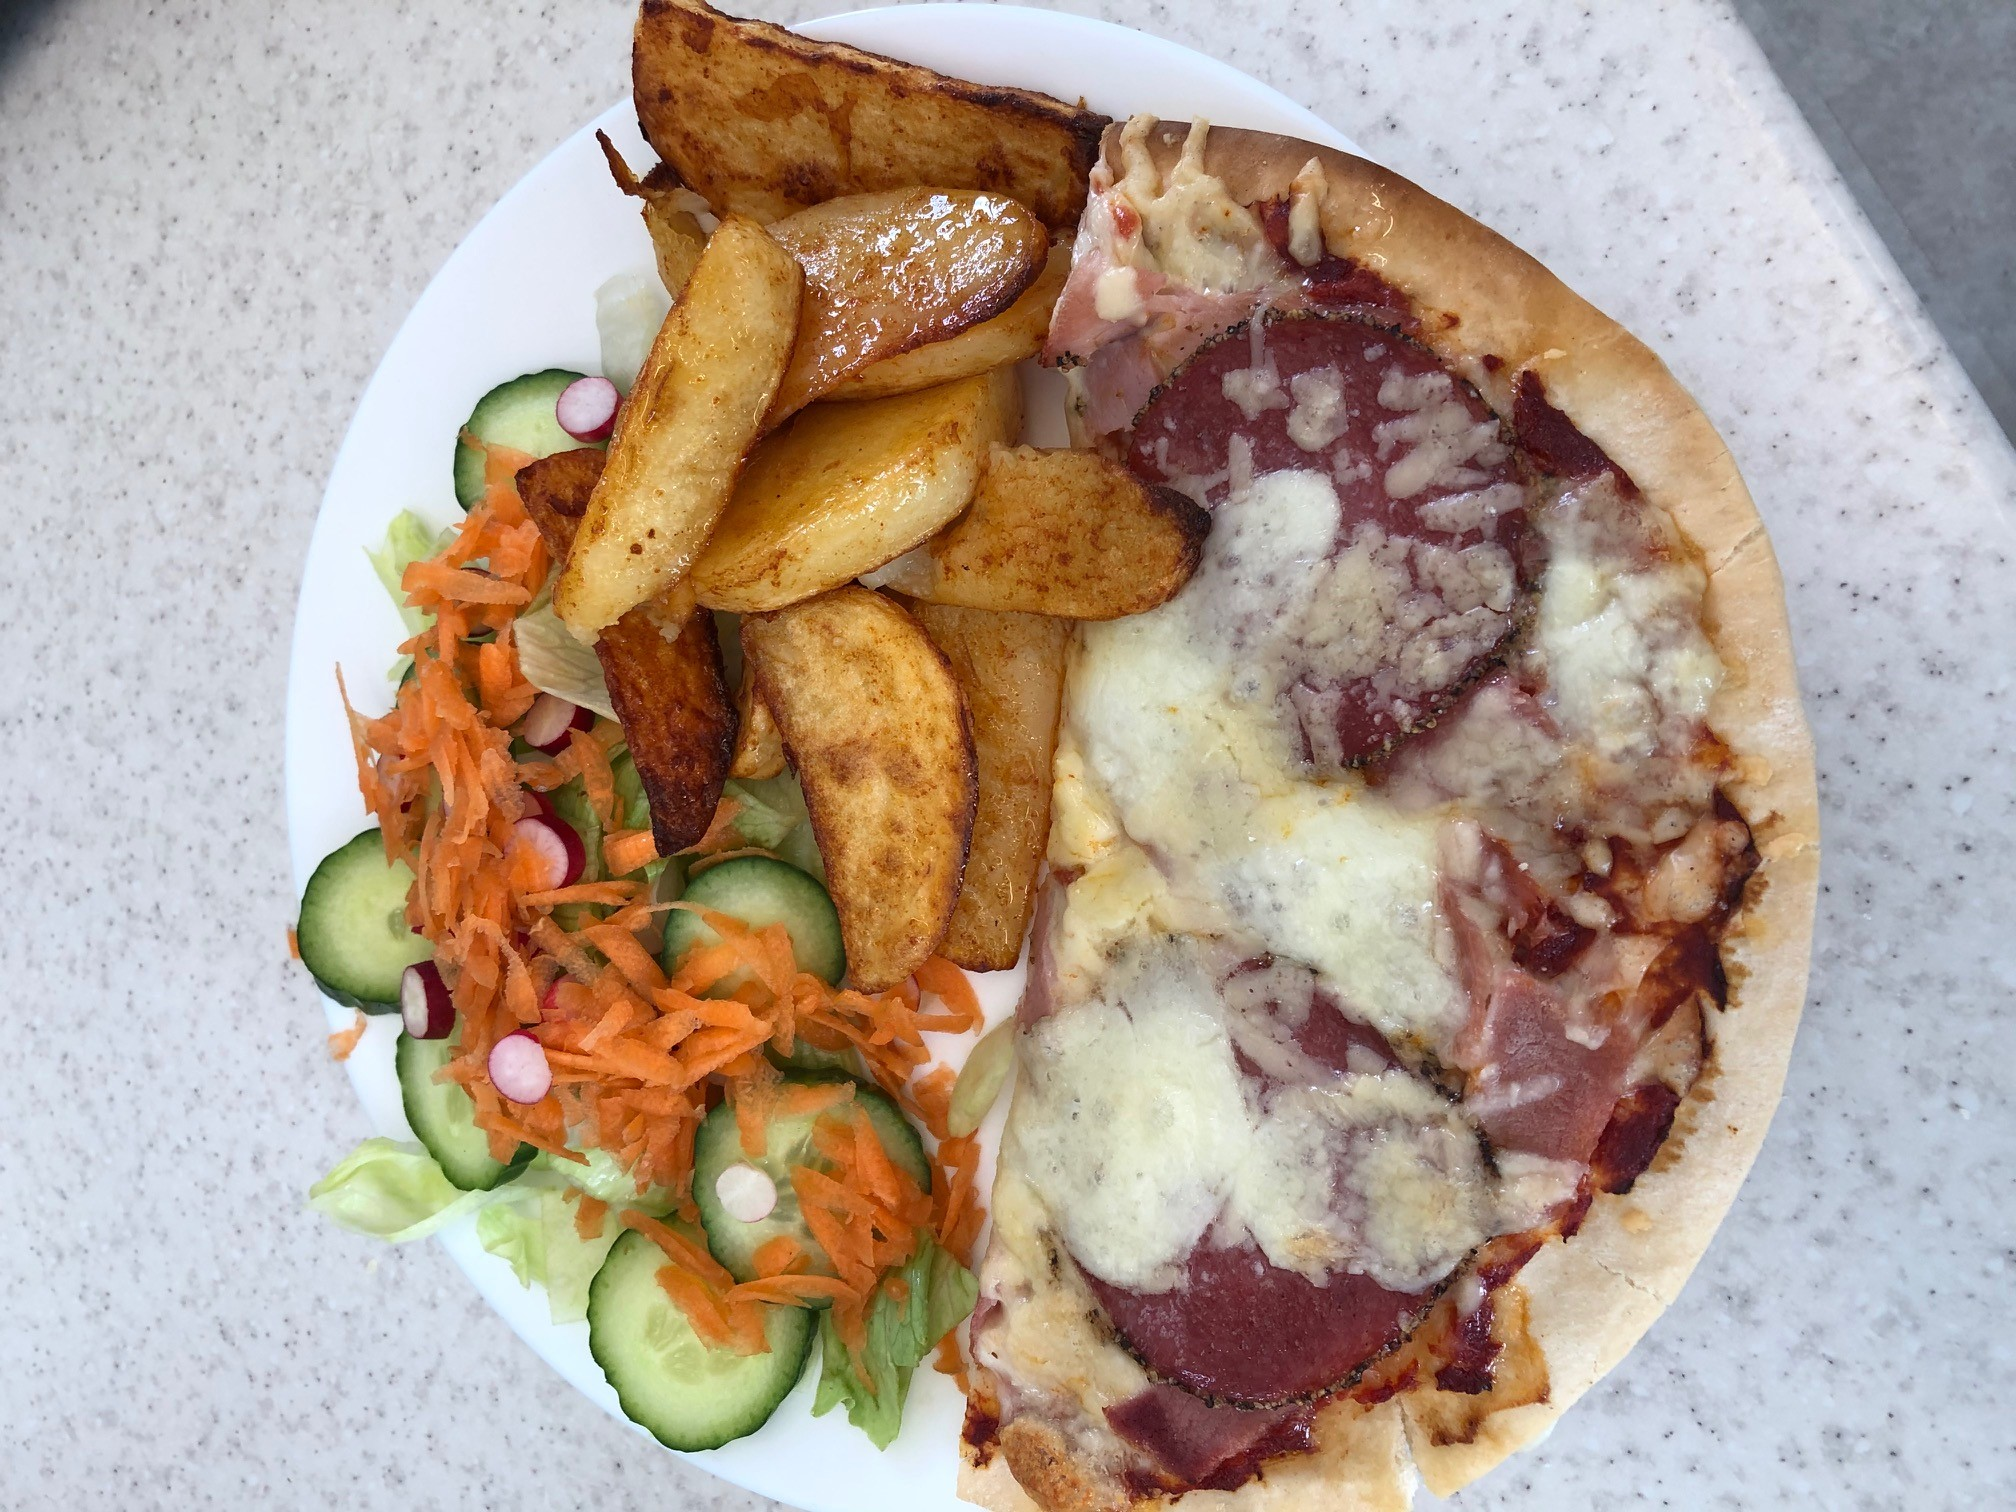 Home made pizza wedges and salad